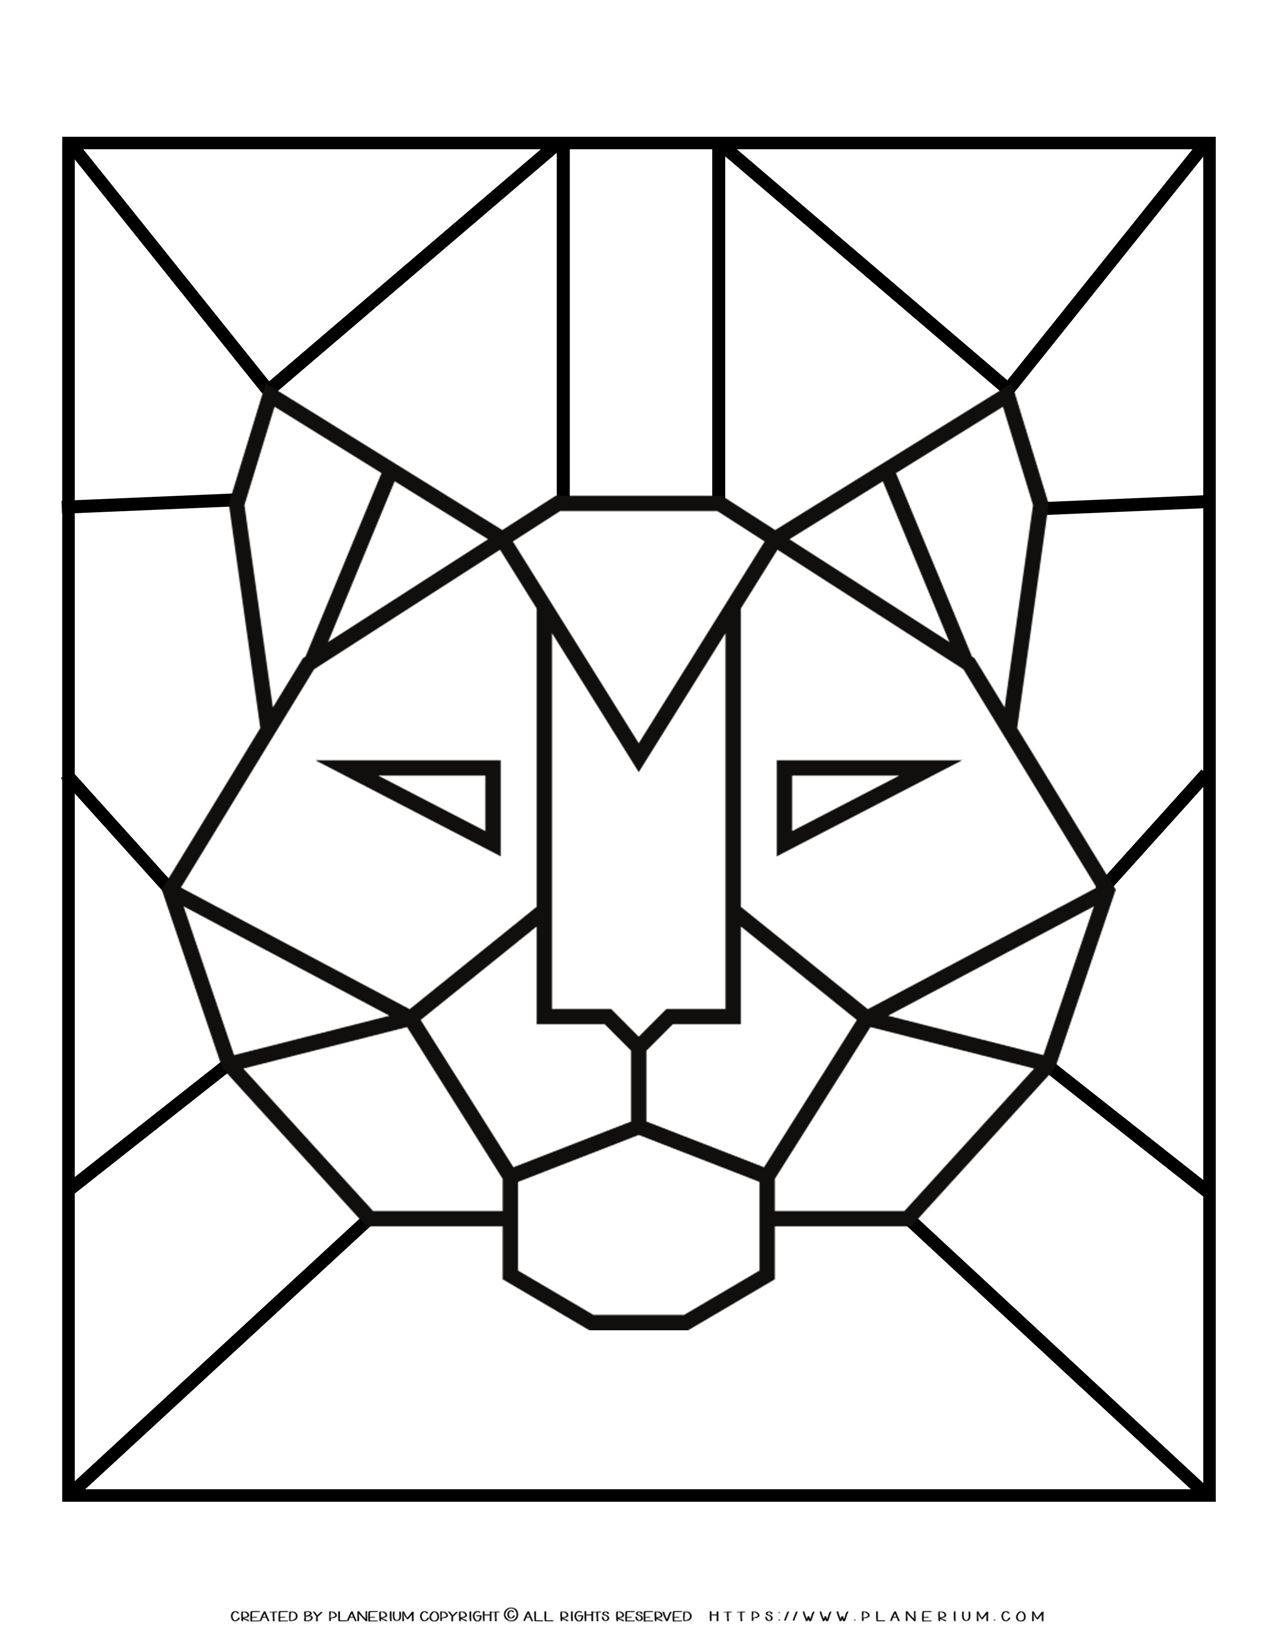 Adult Coloring Pages - Geometric Animals - Tiger - Free Printable | Planerium